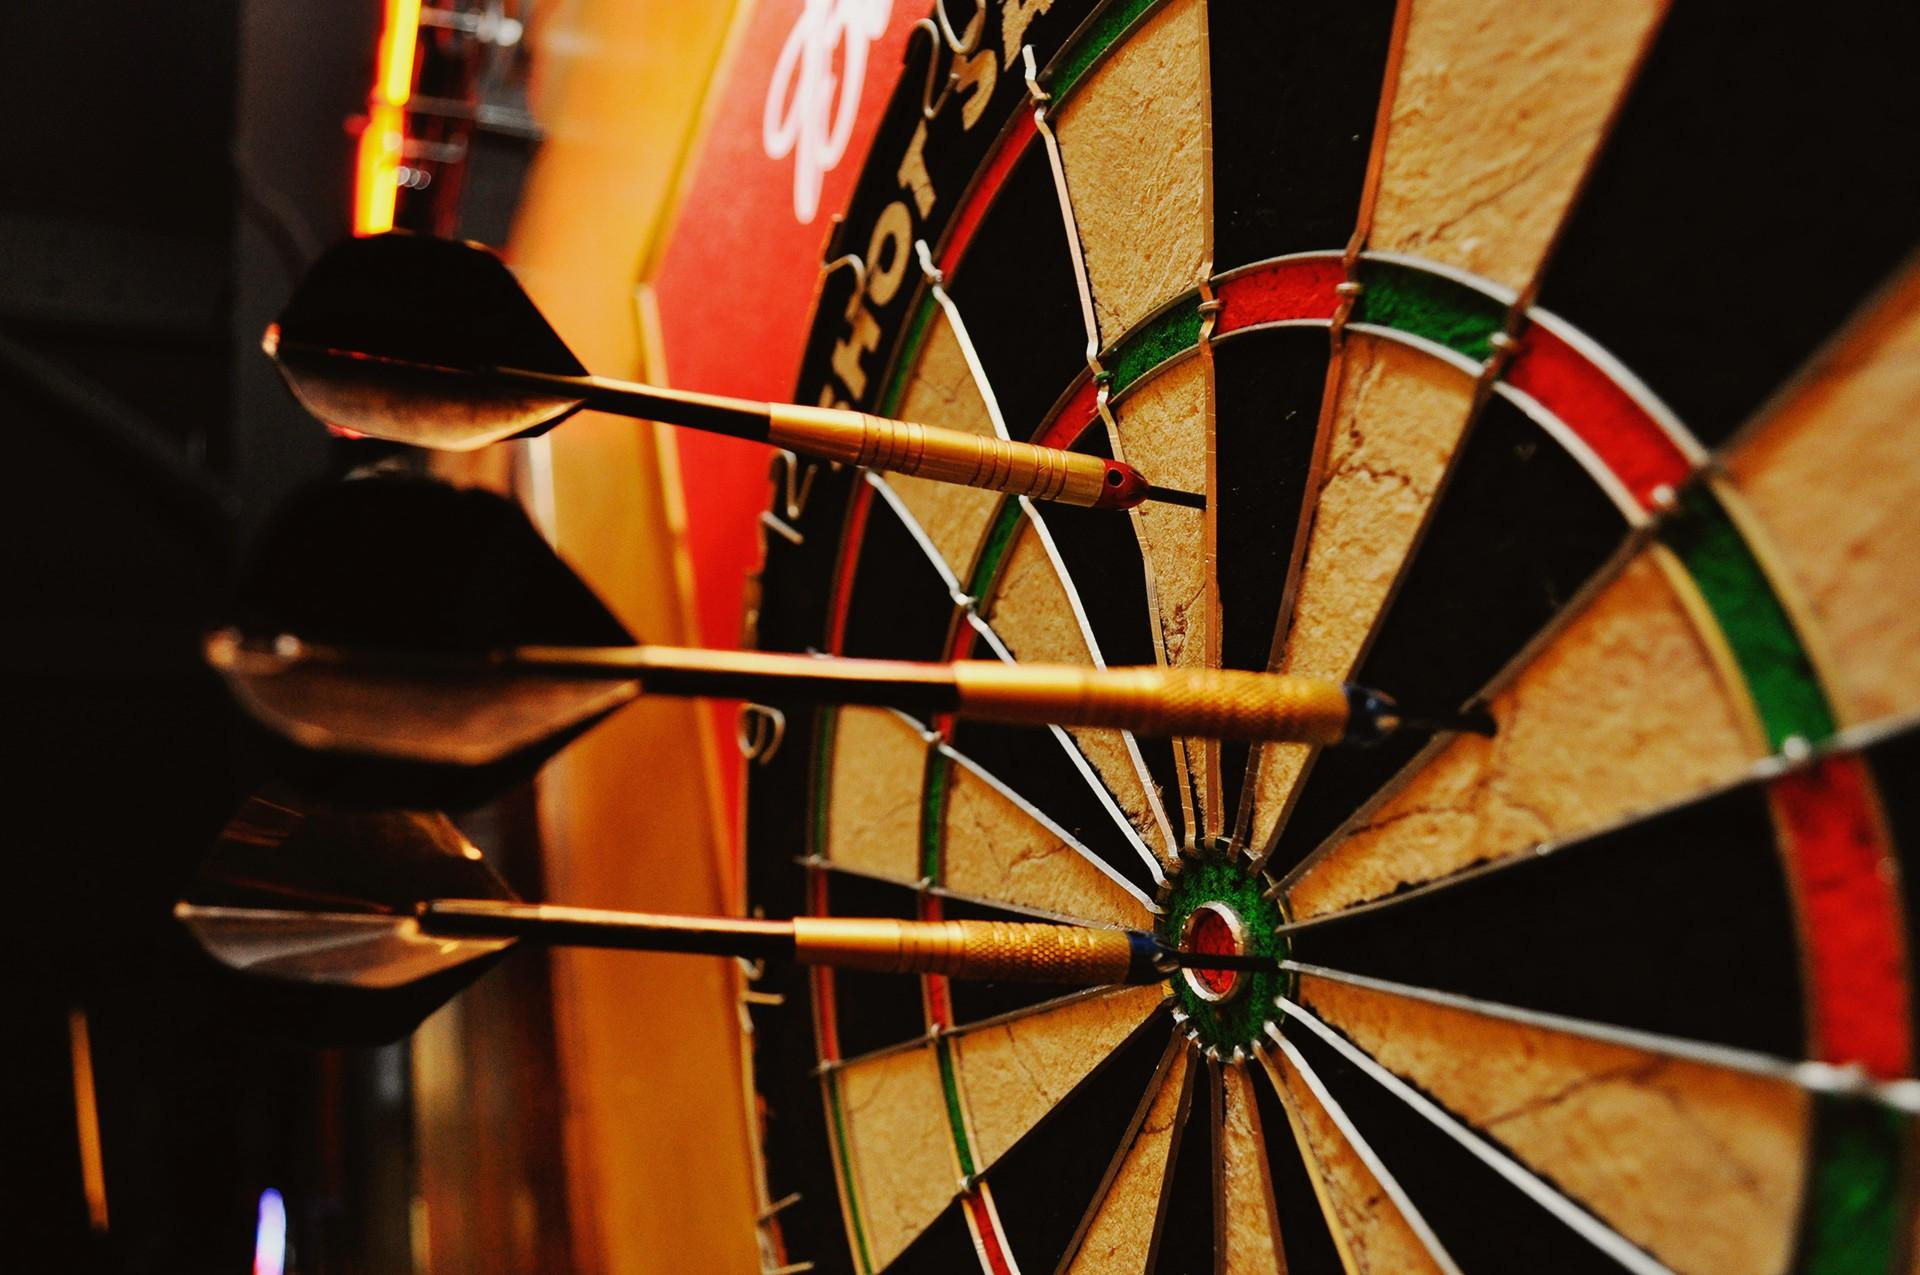 darts board game widescreen desktop wallpaper 1297